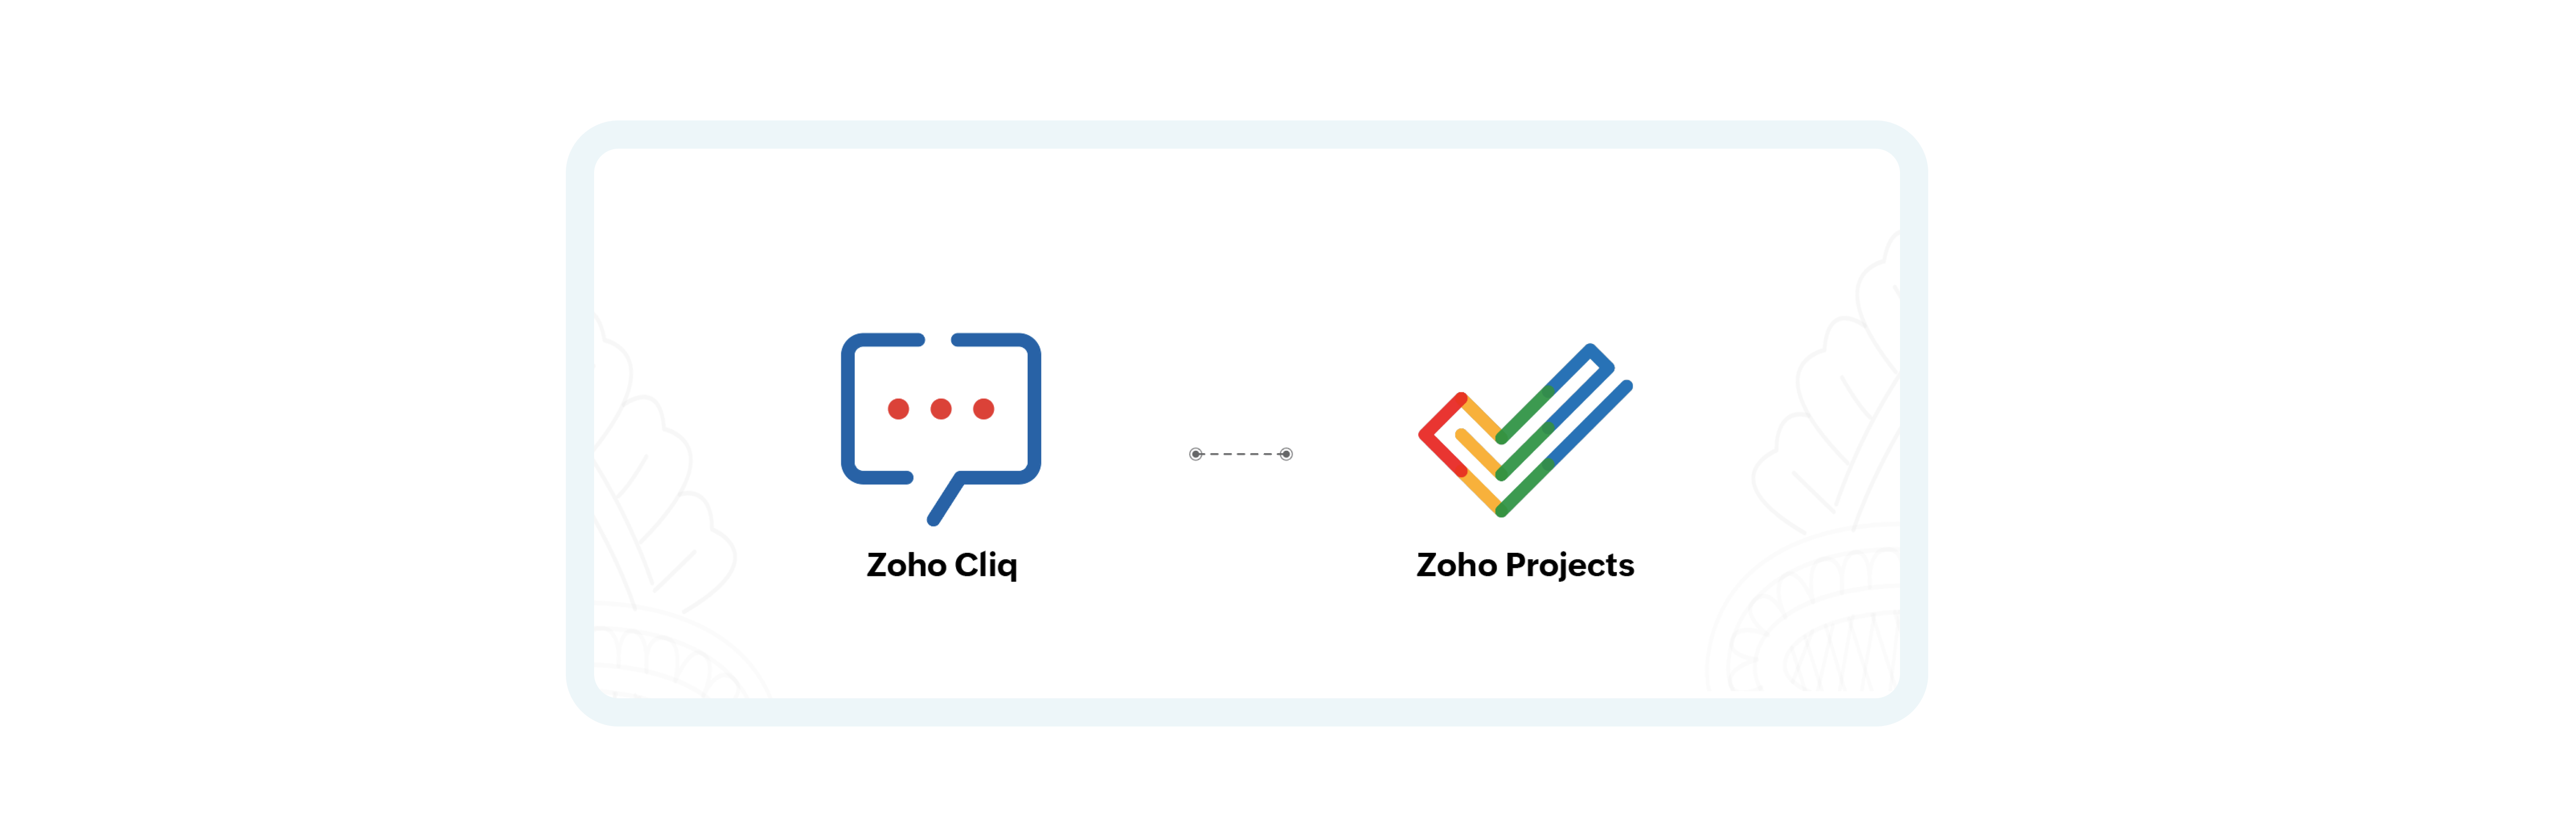 Zoho Cliq's integration with the Zoho Projects keeps your team updated in real-time and collaborate better.